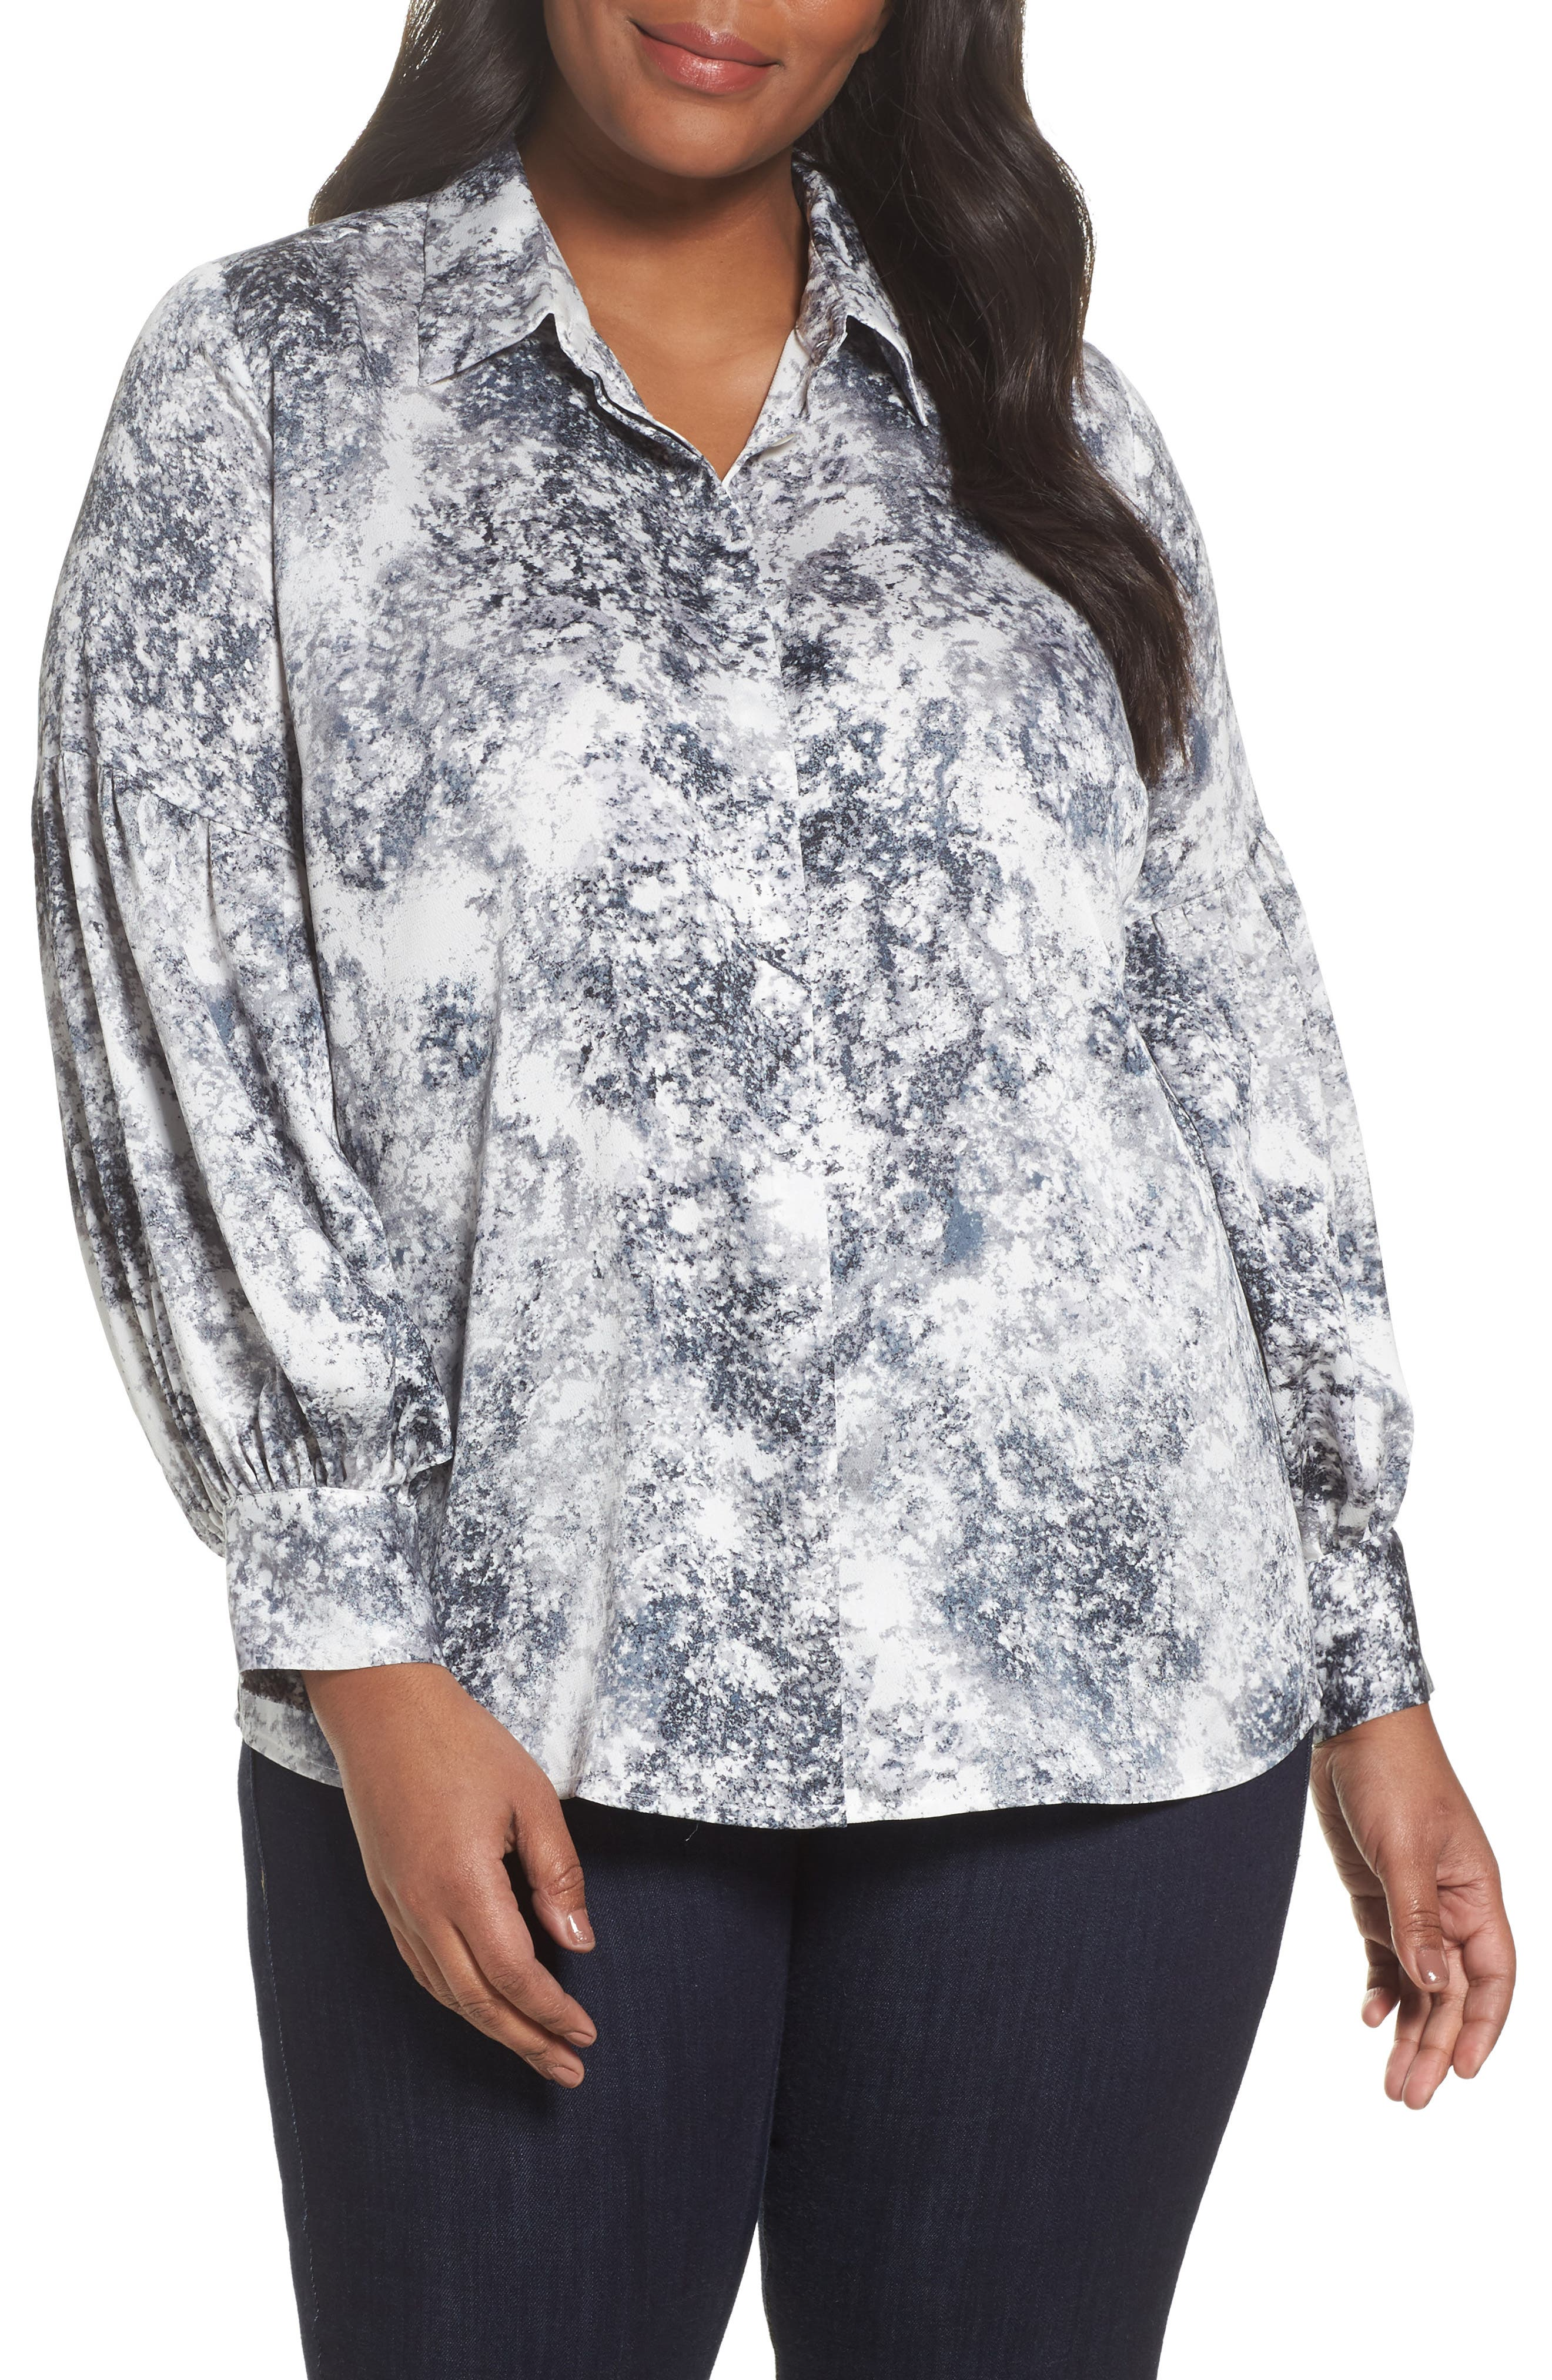 Main Image - Vince Camuto Speckled Print Blouse (Plus Size)